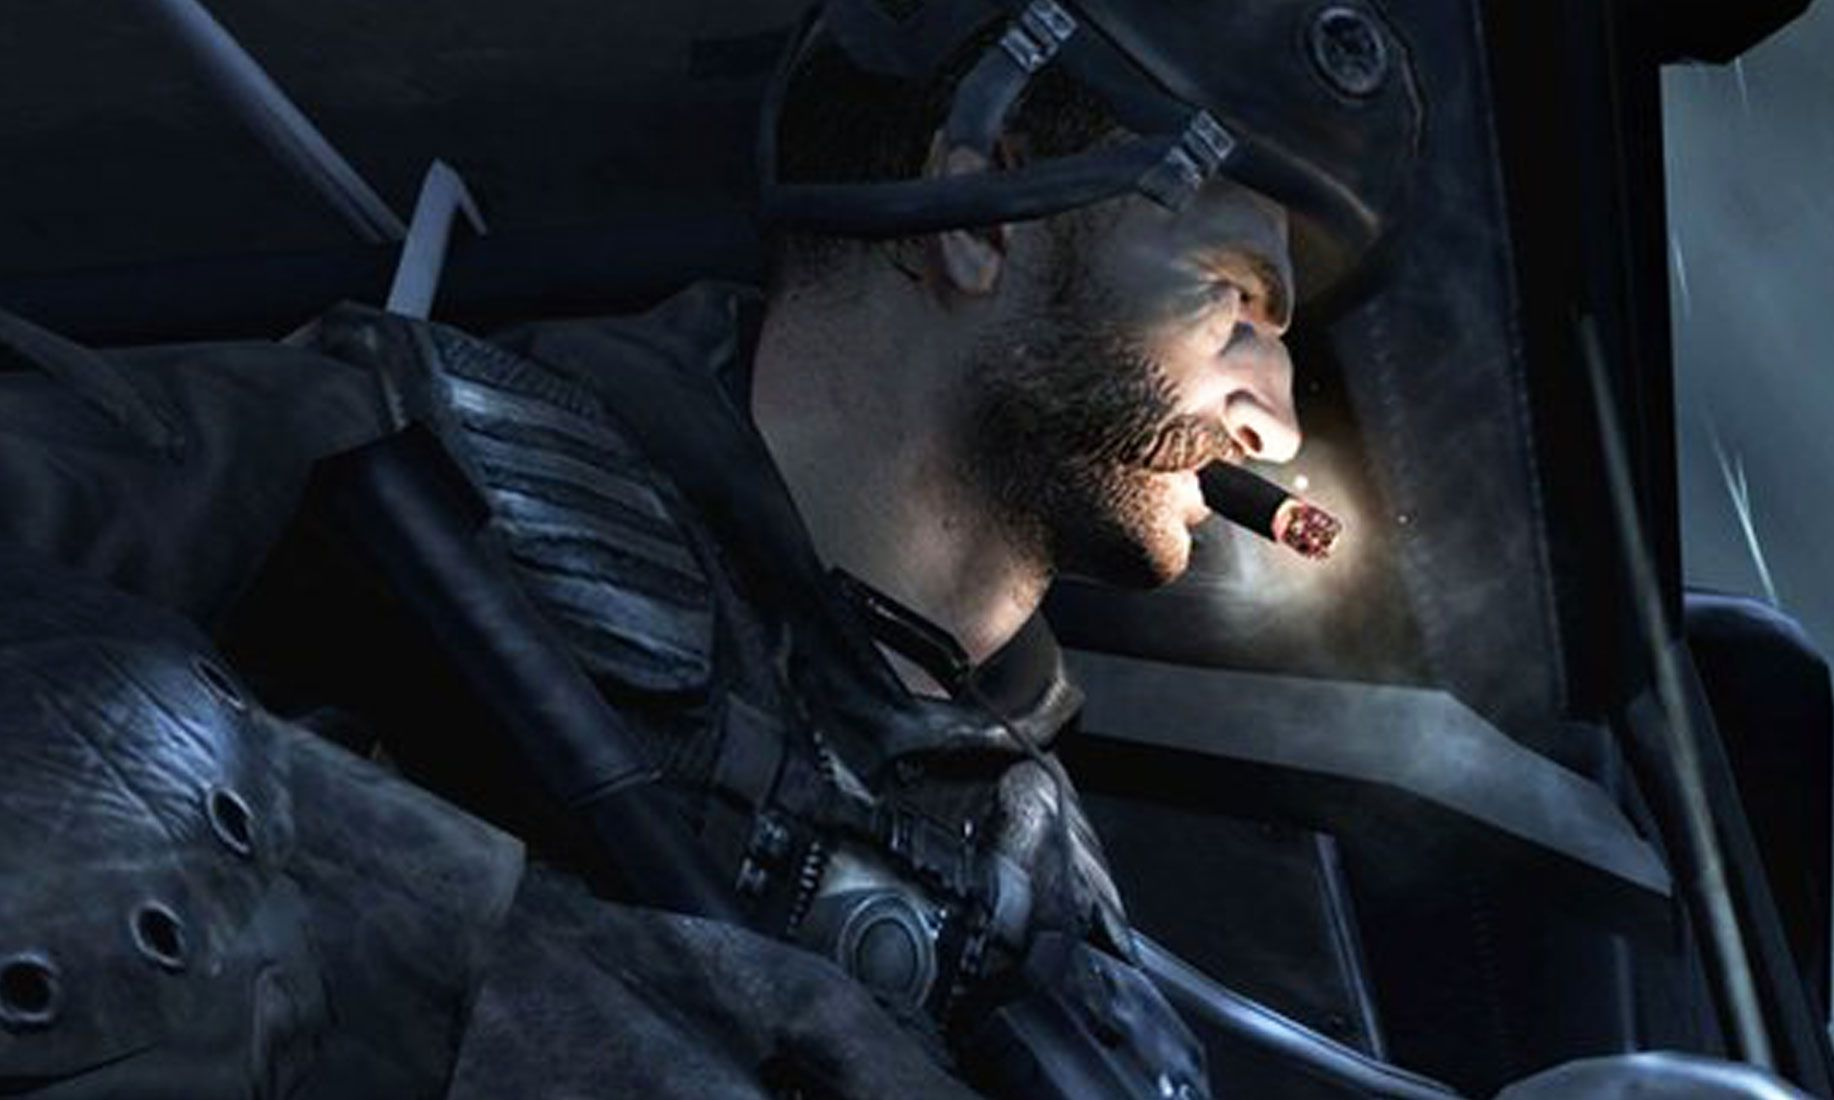 Captain Price Call of Duty Modern Warfare price Video game 1834x1100